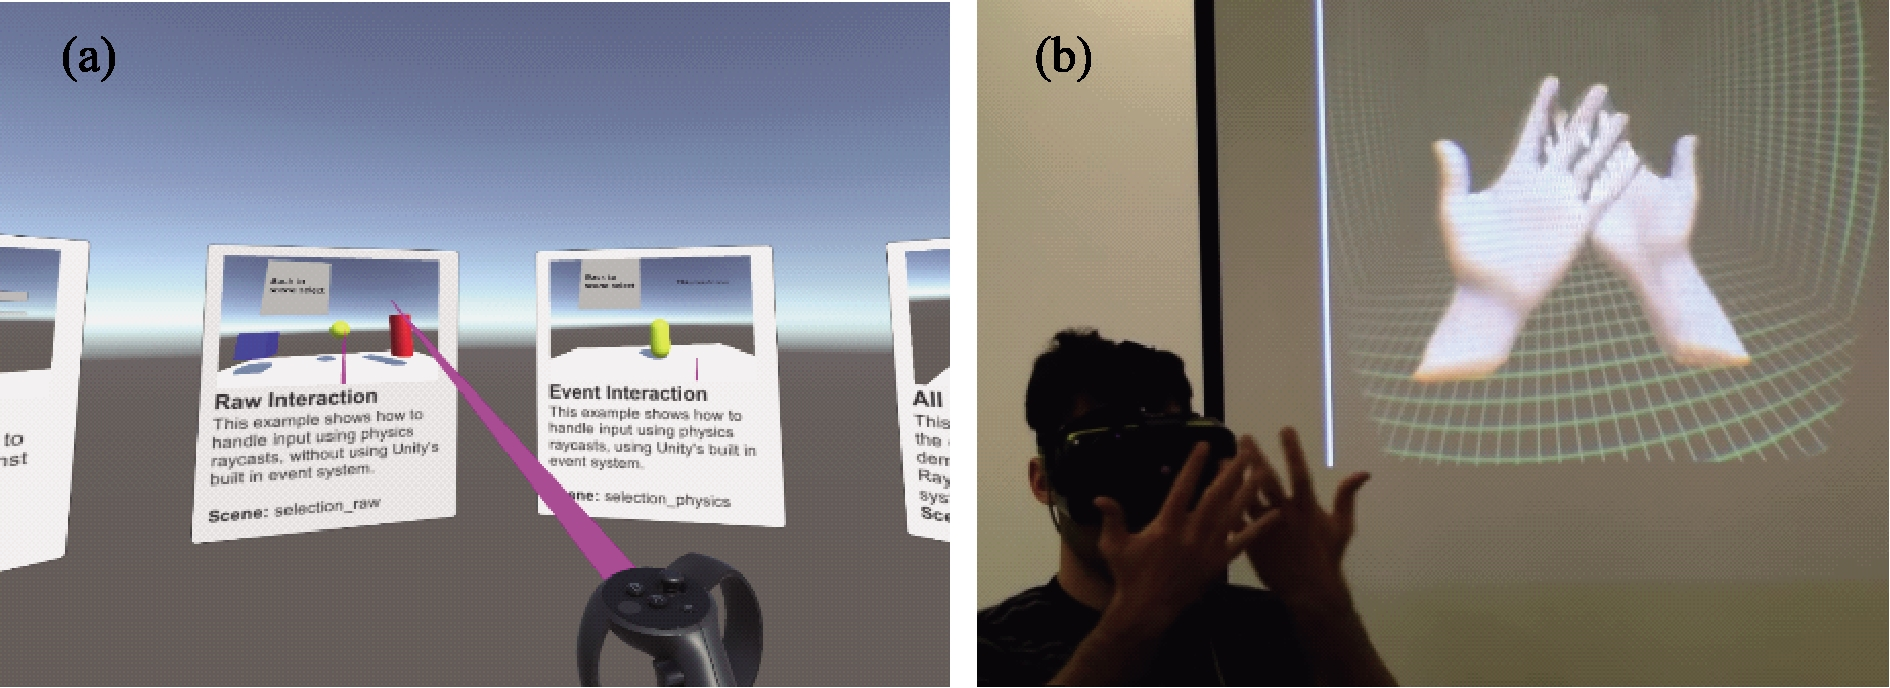 Review of studies on target acquisition in virtual reality